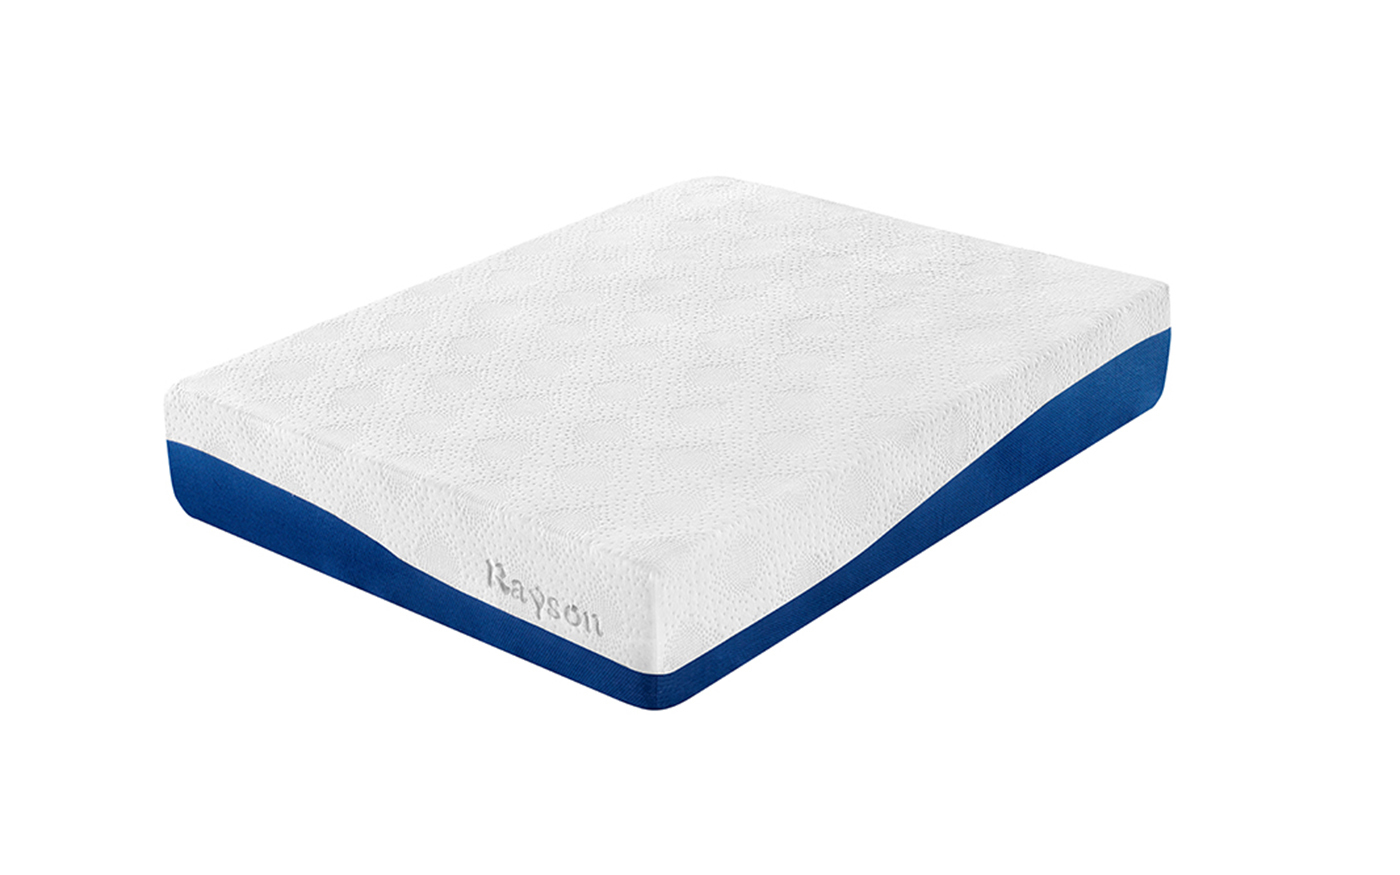 soft memory foam mattress customized for bed Synwin